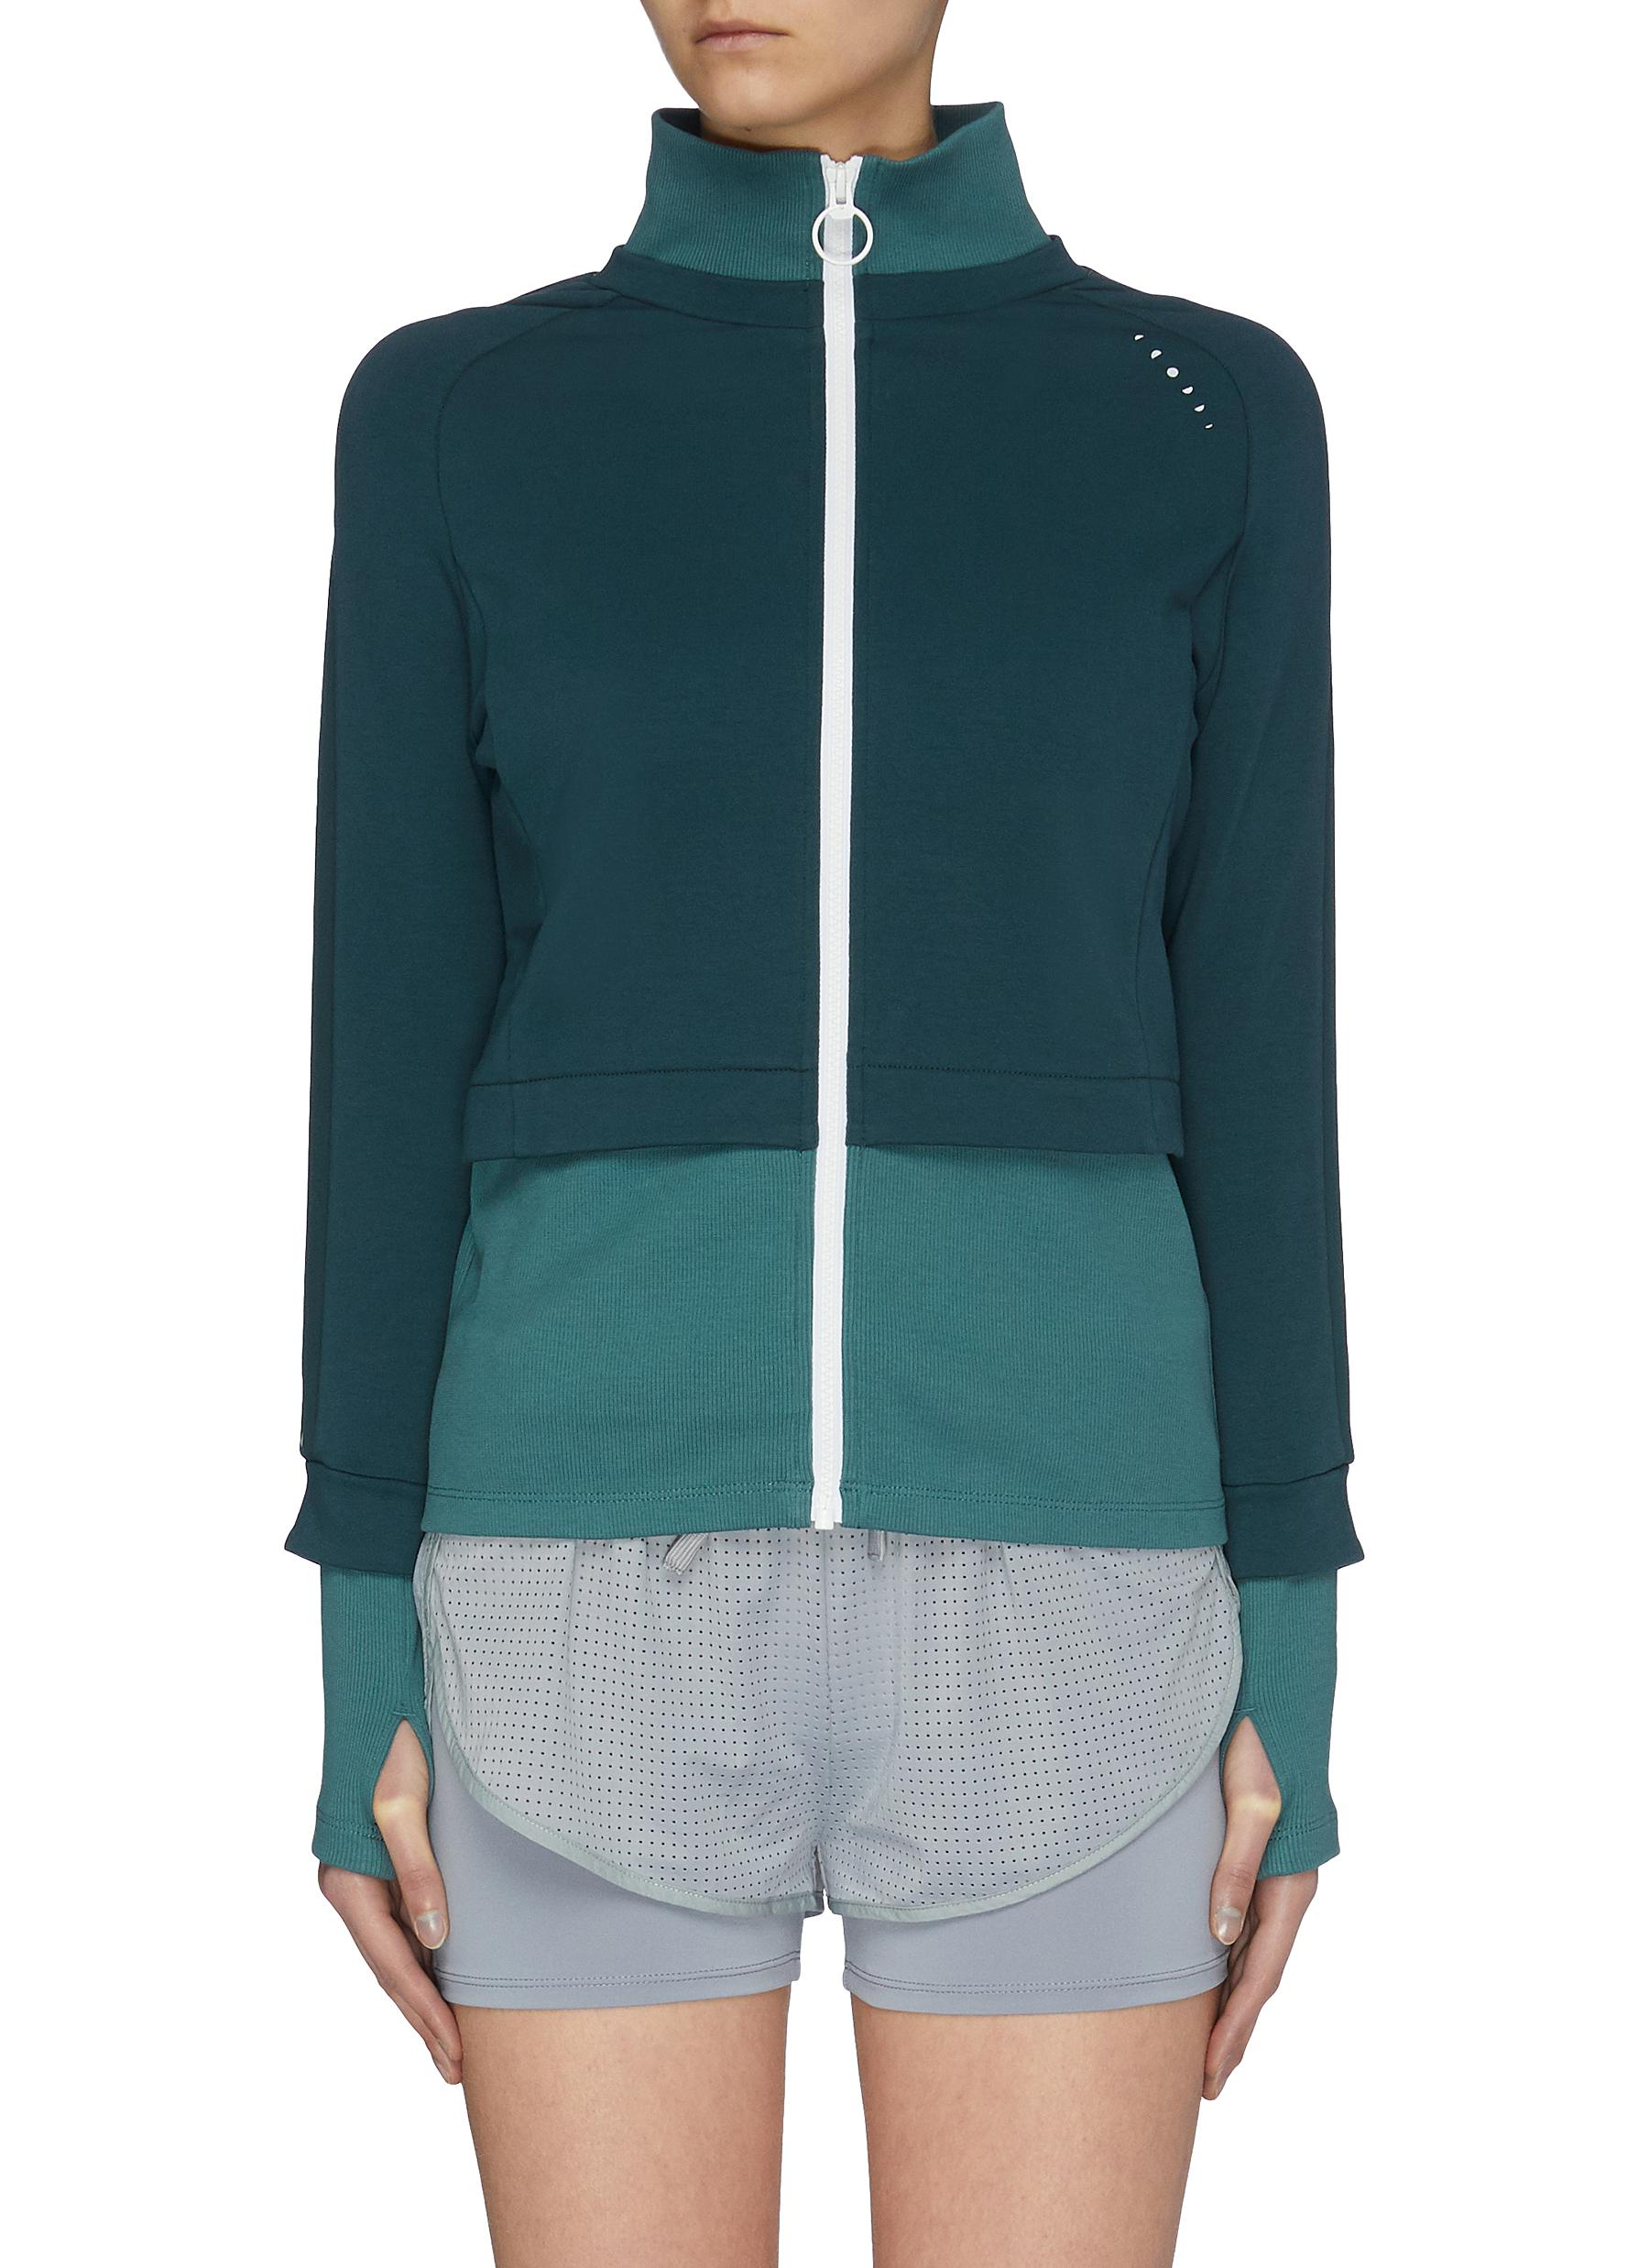 Buy Particle Fever Jackets Colour Panelled Track Jacket